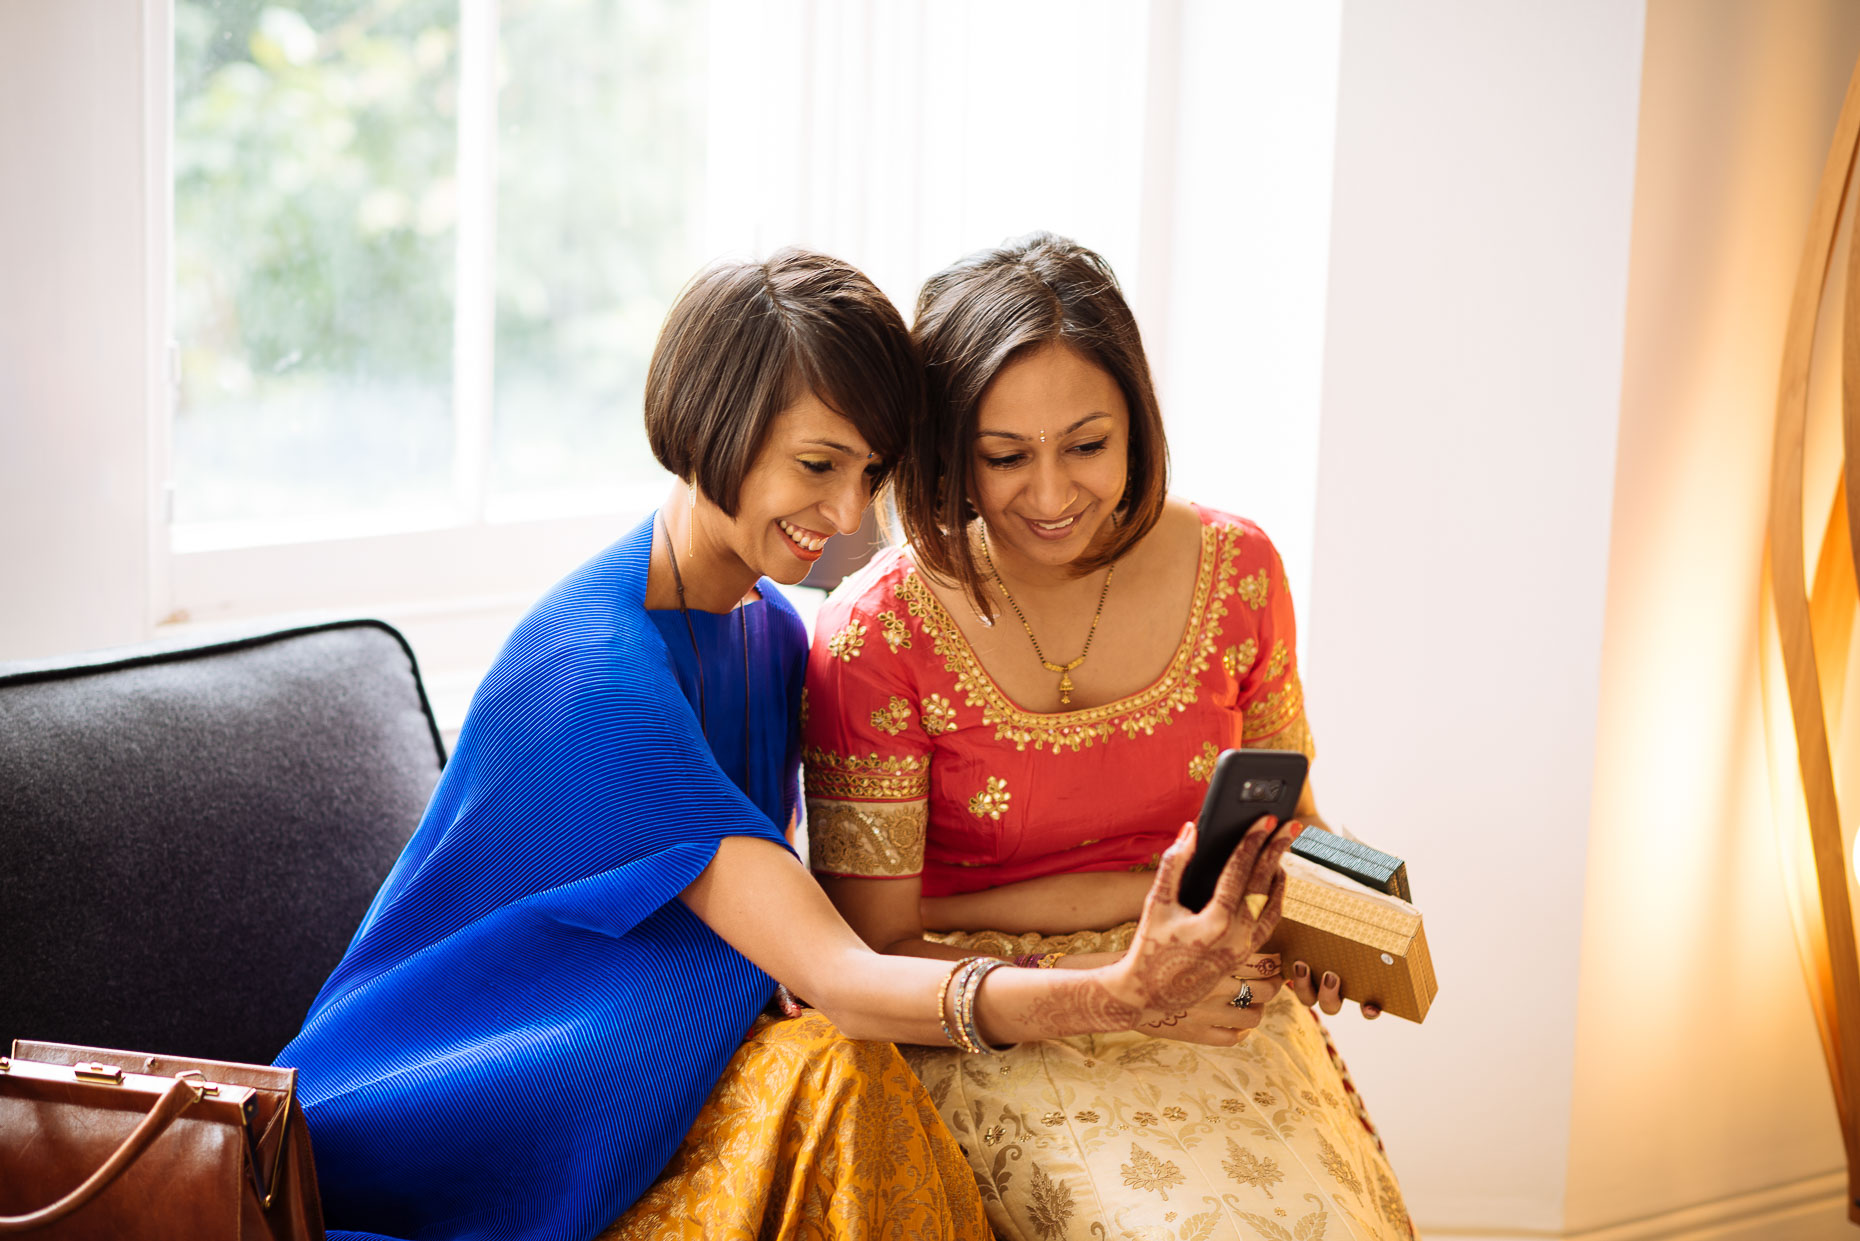 pooja-dan-sisters-skype-call-london-asian-wedding-photography-03